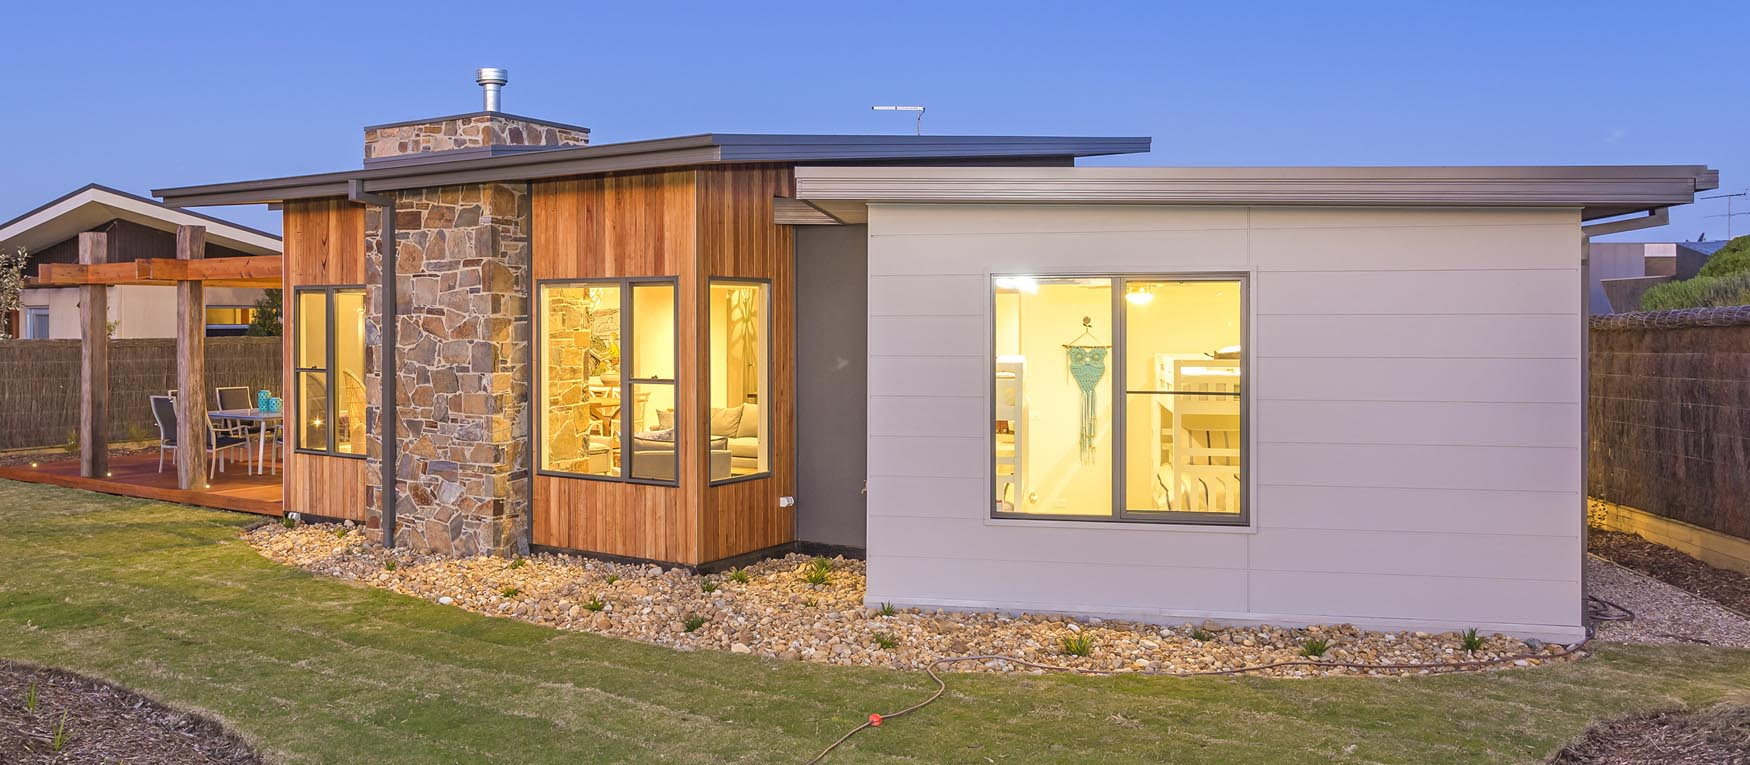 Contemporary exterior innovative designs colorbond contemporary - Built By Pivot Homes Natural Stone Has Been Used Not Only To Give This Modern Contemporary Home An Amazing Entry Focal Point But Also Has Been Us